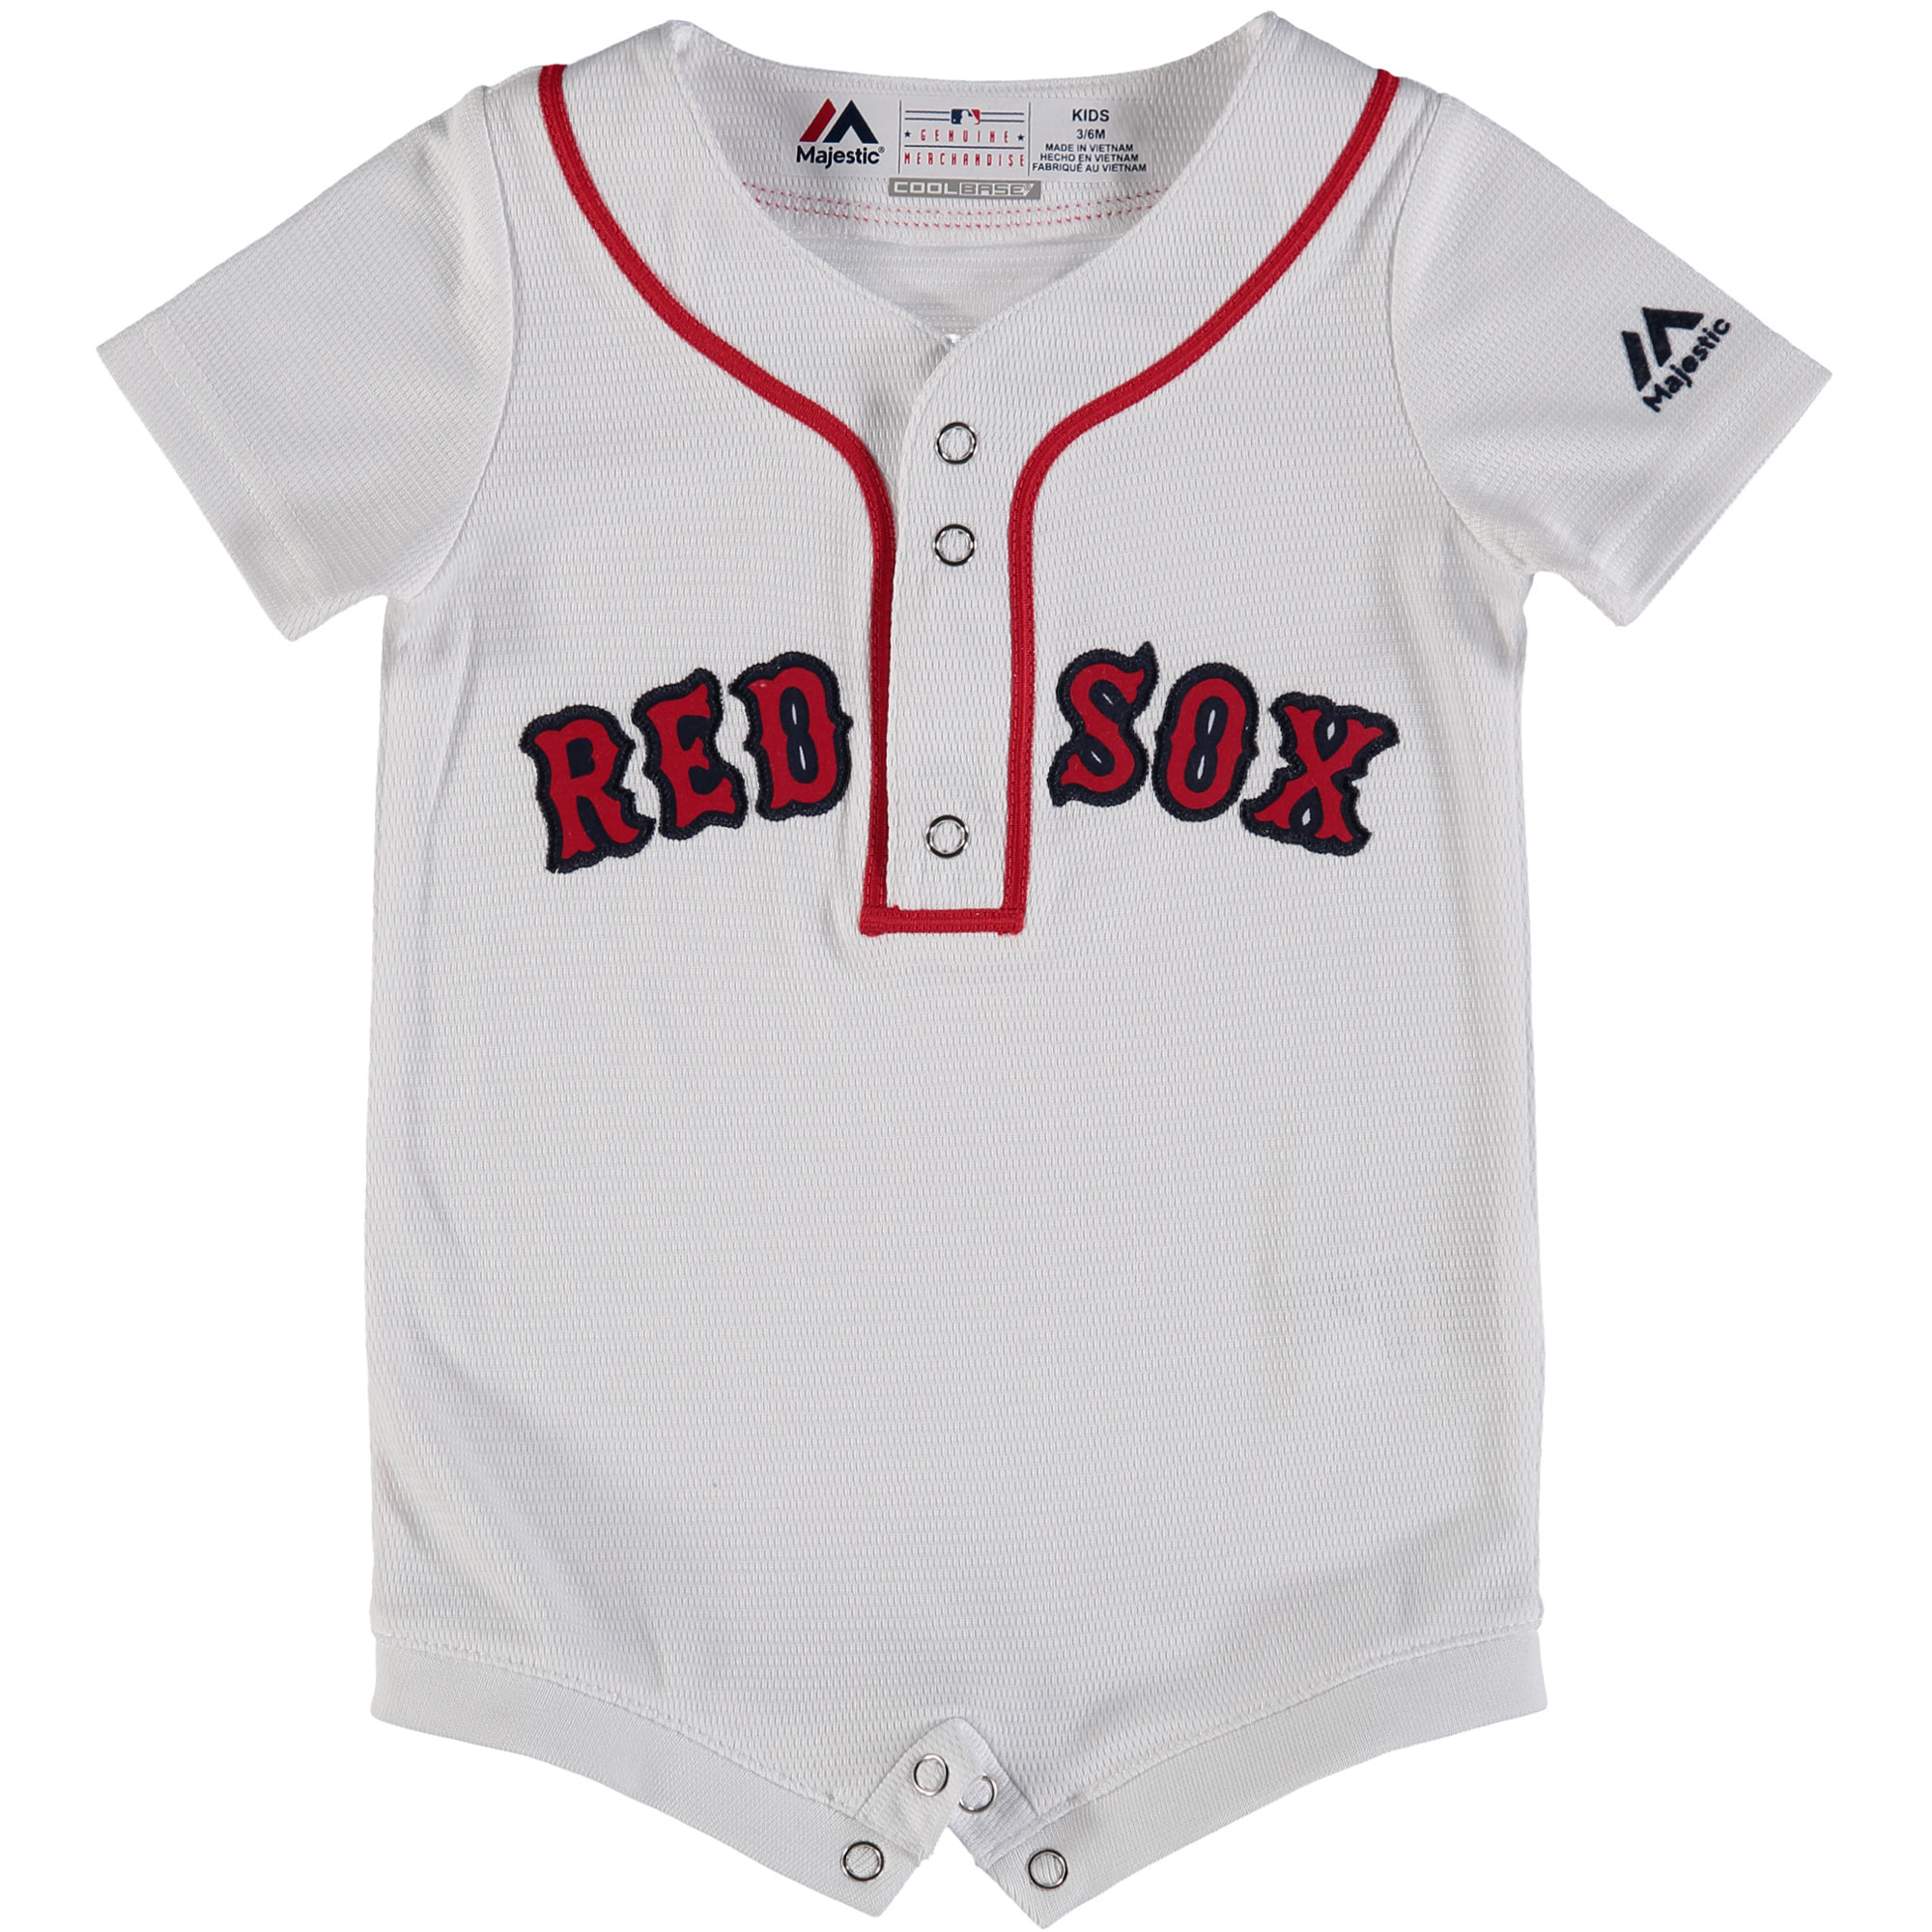 Boston Red Sox Majestic Newborn & Infant Home Cool Base Romper Jersey - White